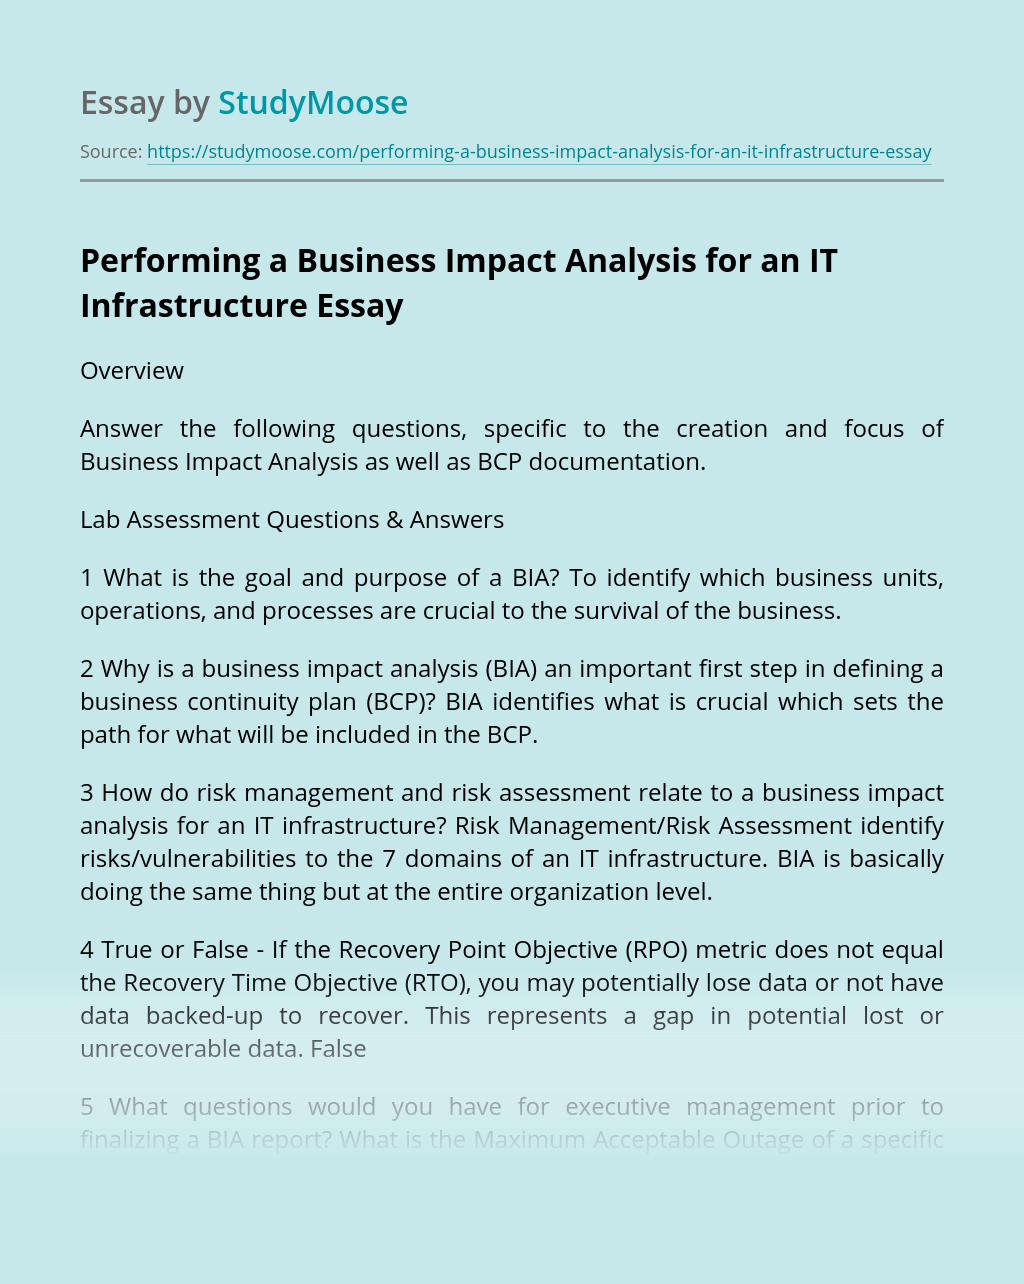 Performing a Business Impact Analysis for an IT Infrastructure